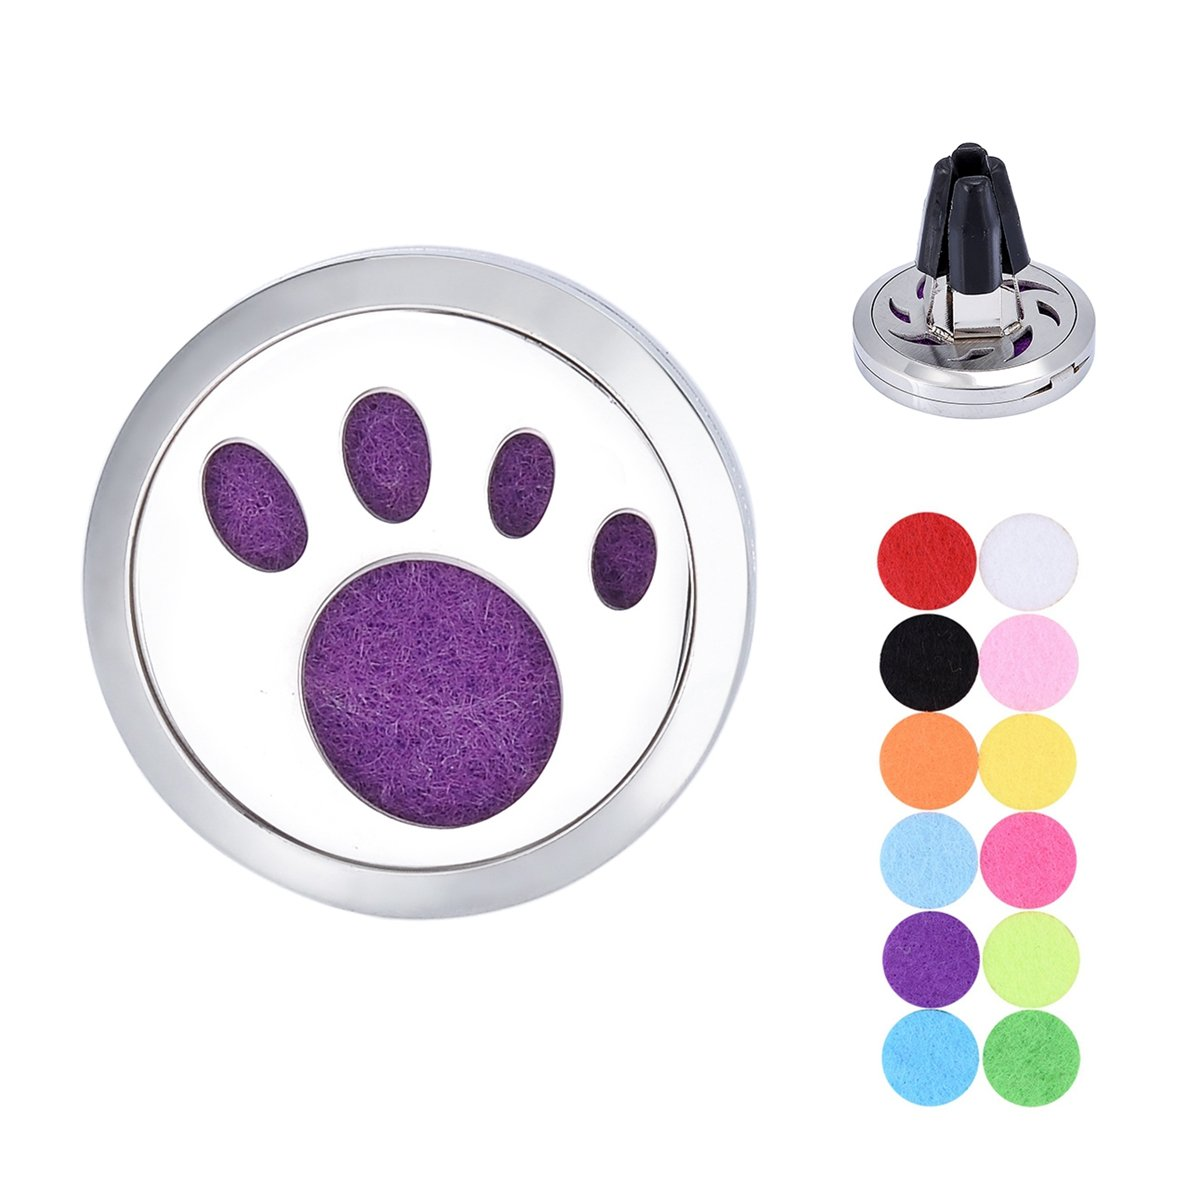 Pet Pawprint Car Air Freshener Aromatherapy Essential Oil Diffuser Vent Clip Stainless Steel Locket with 11 Felt Pads